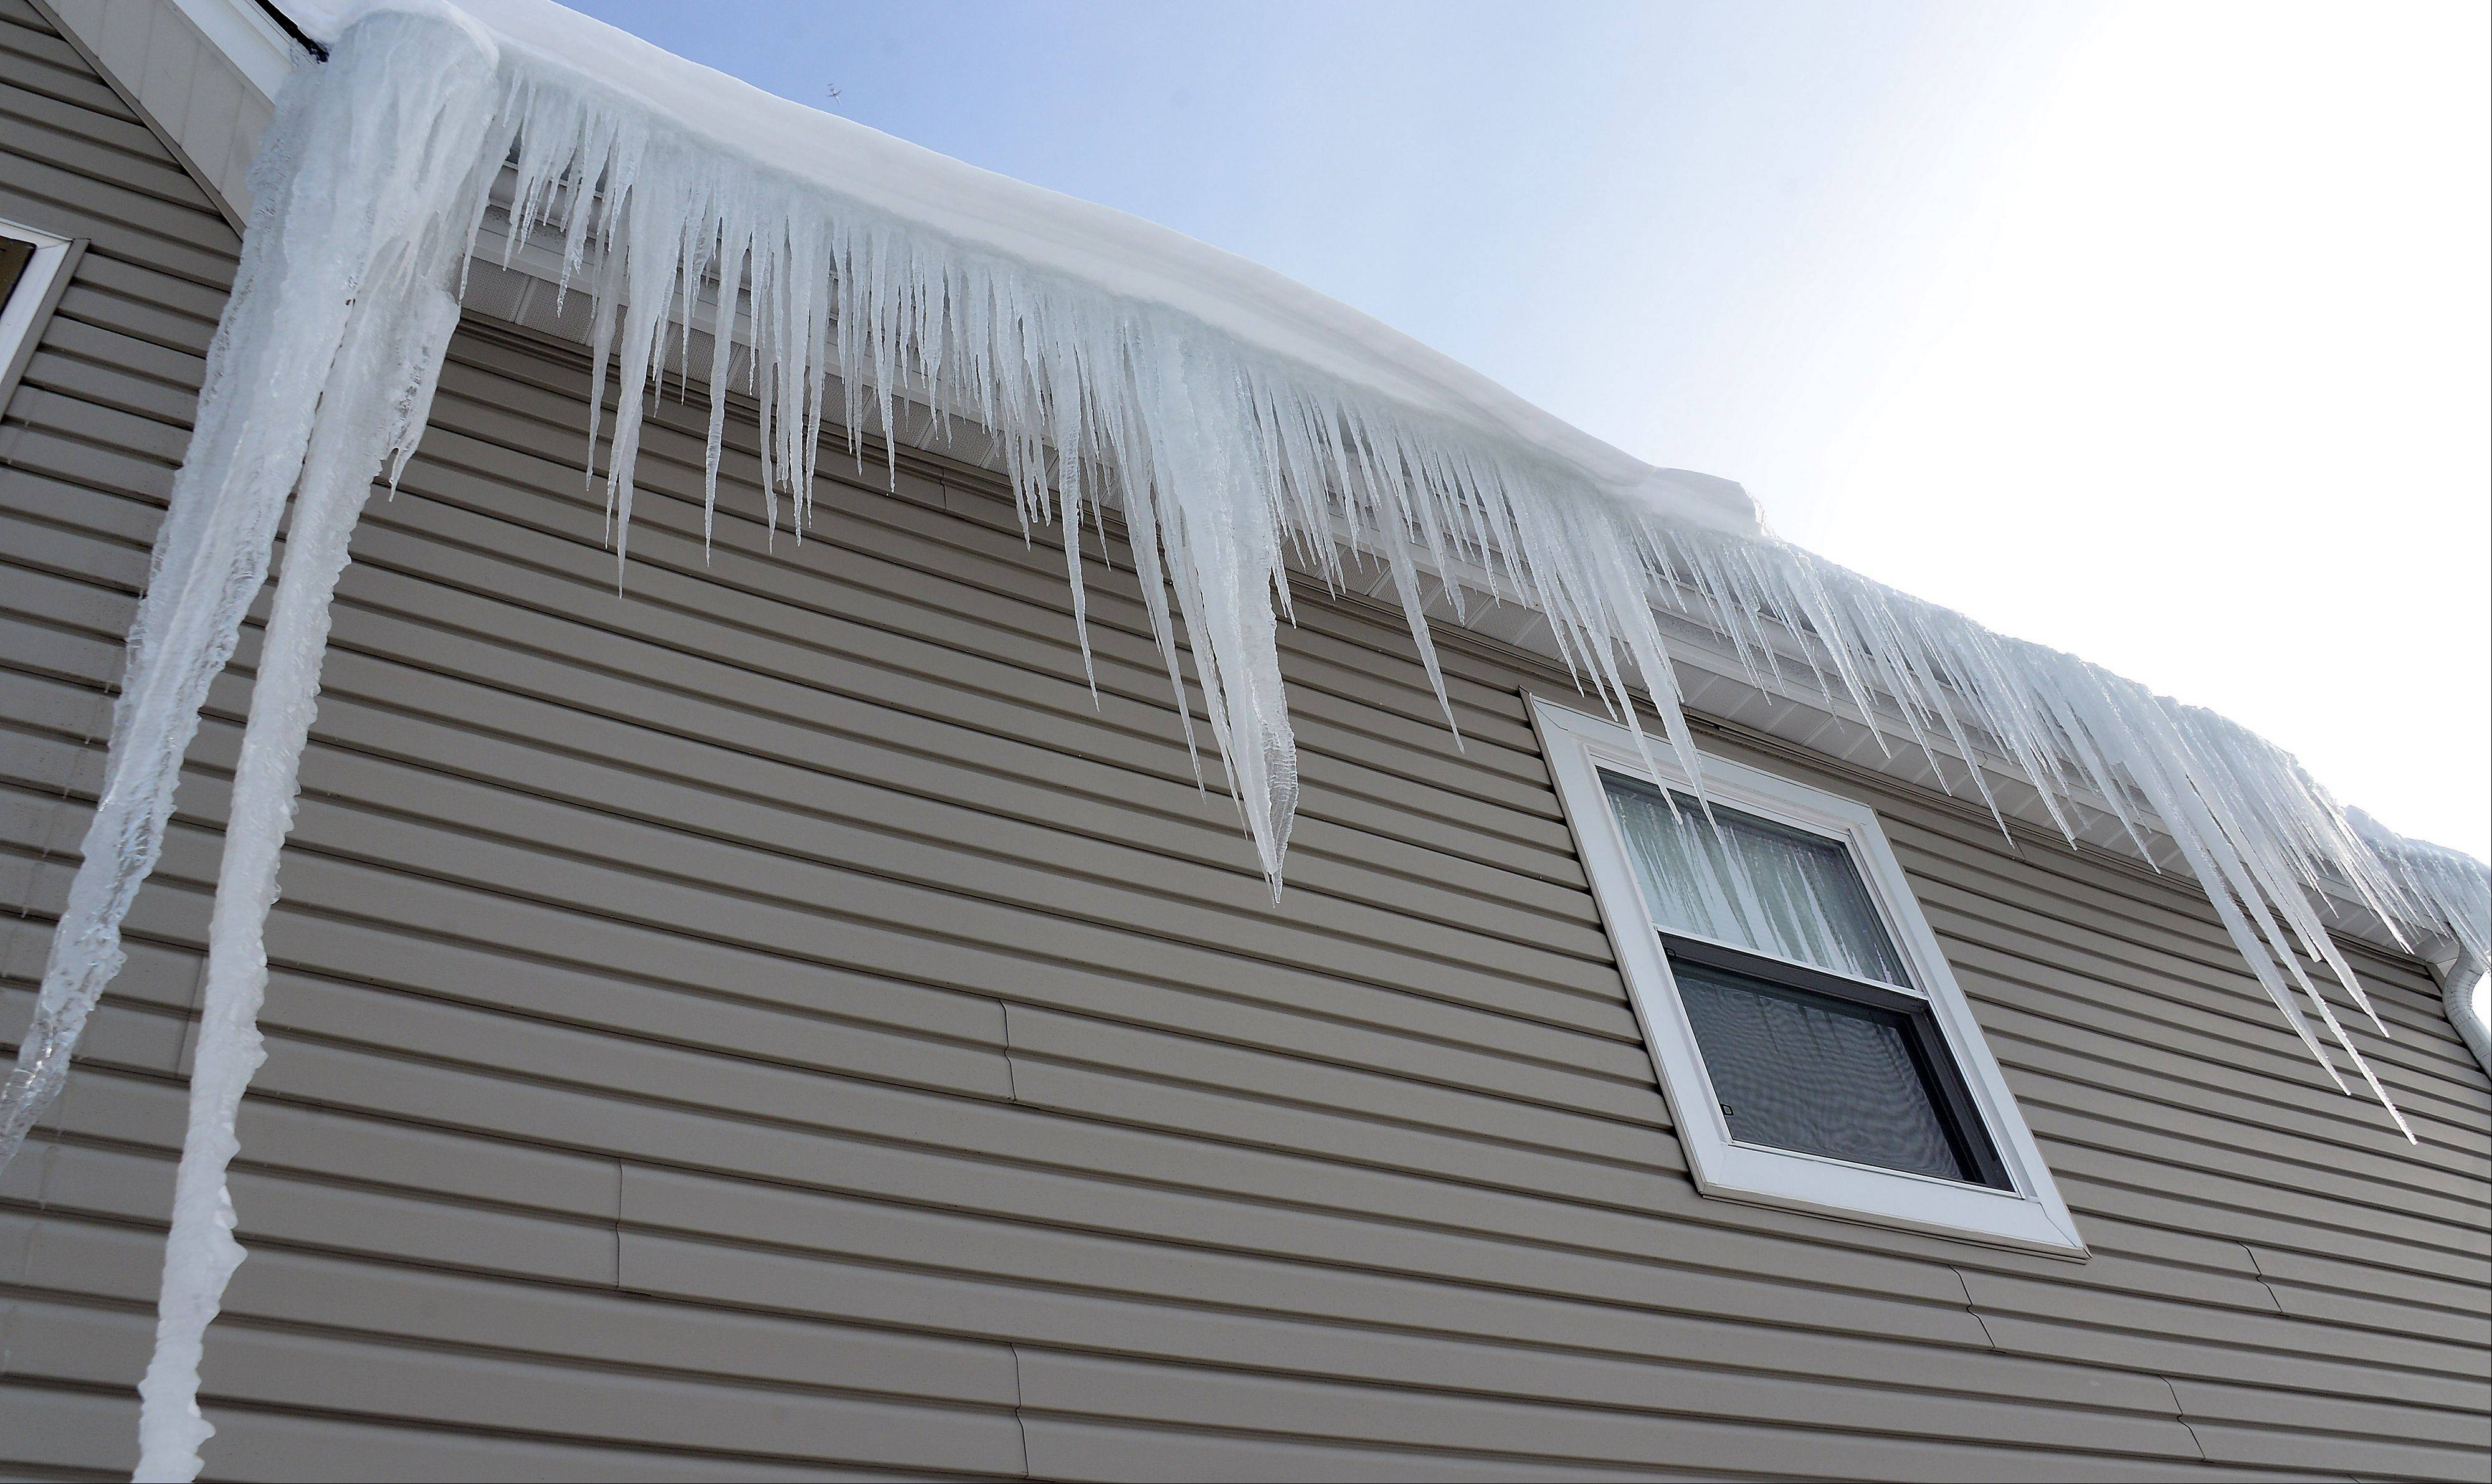 These icicles hang from a building in Palatine.